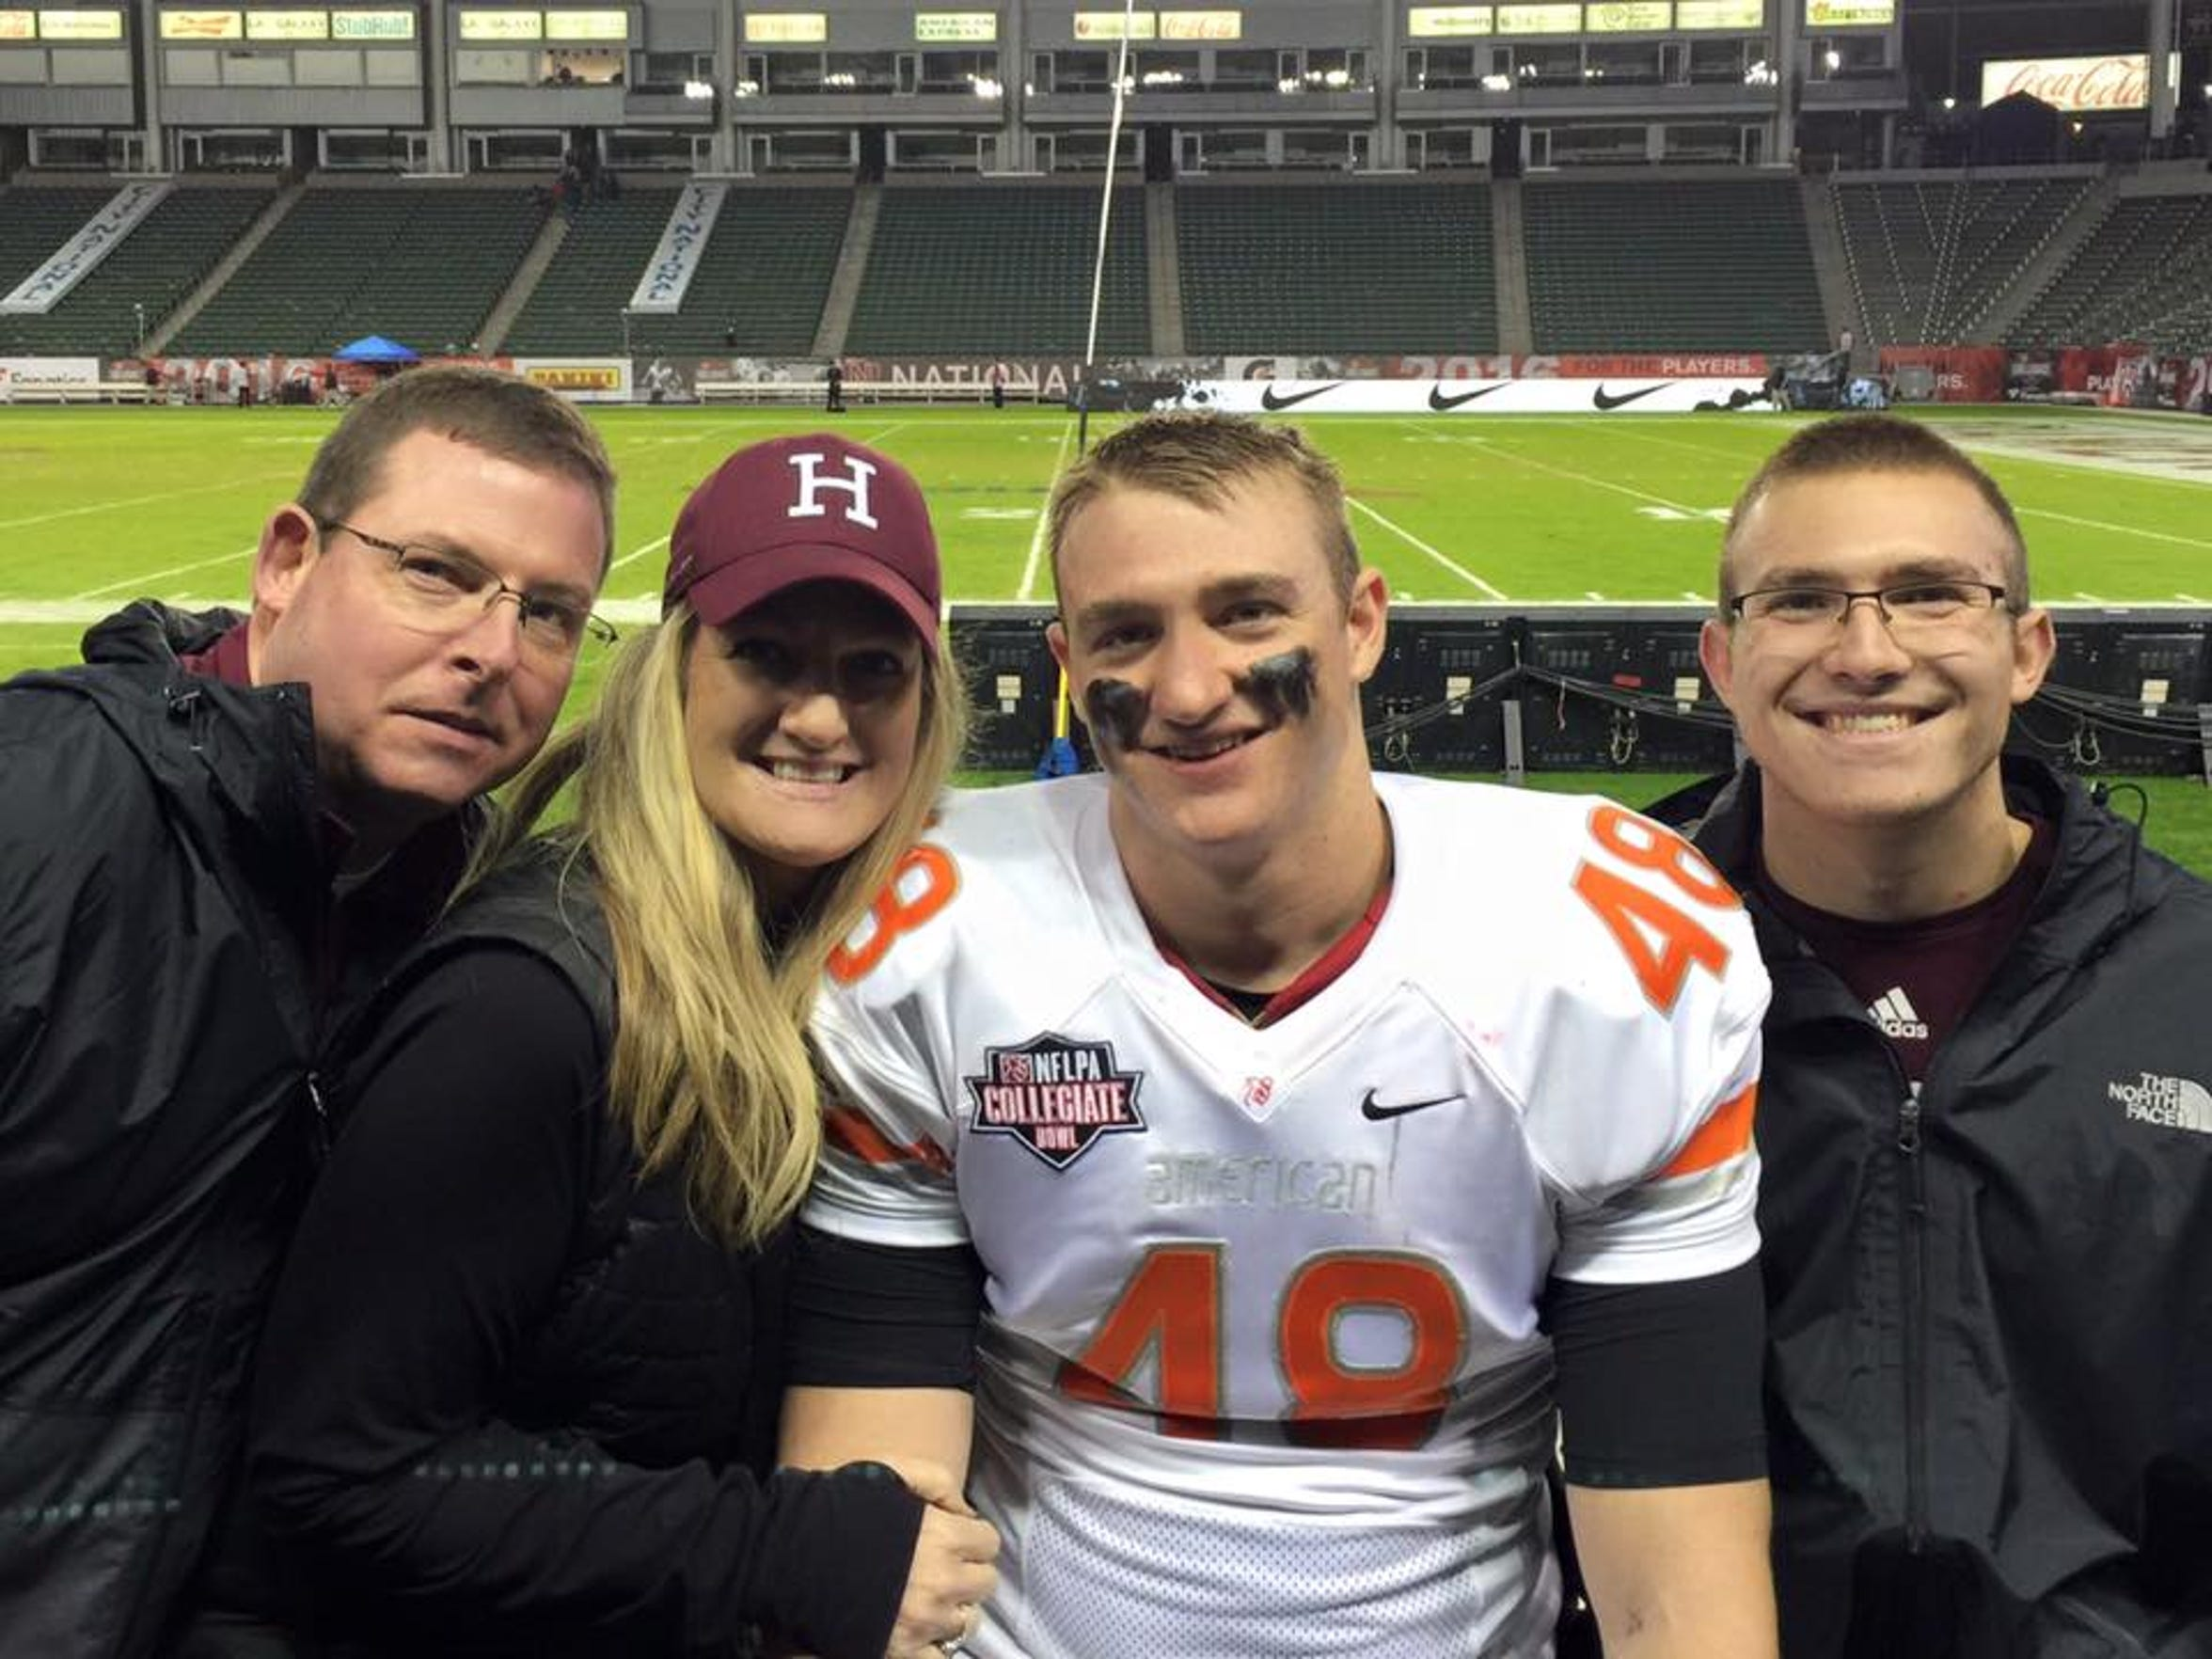 Ben's dad Brian, mom Kristen and brother Noah pose with Ben (center) following his performance in the NFLPA Collegiate Bowl.